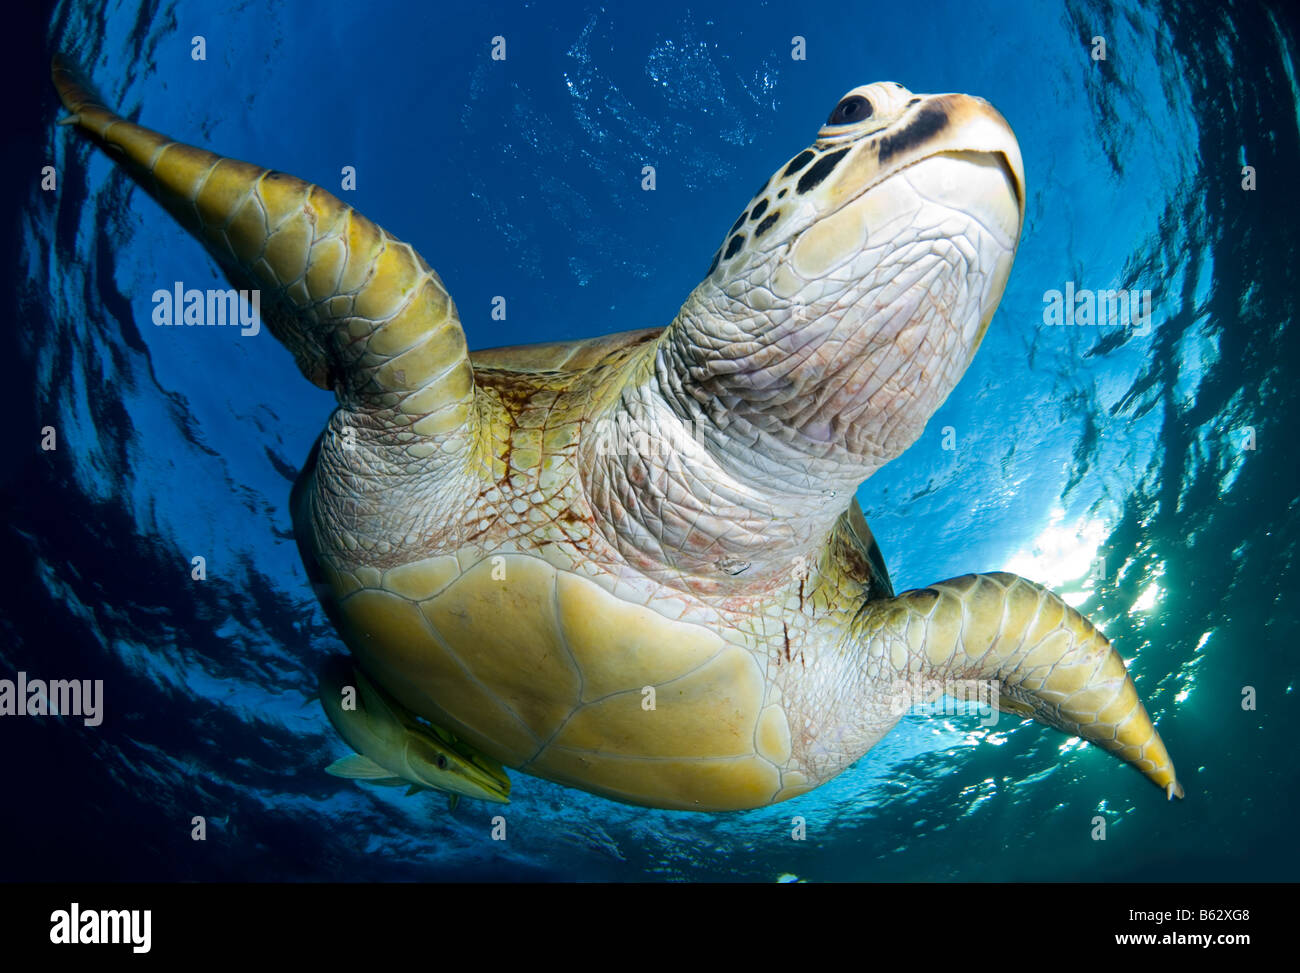 Green sea turtle, chelonia mydas, swimming in shallows after breathing on the surface. Stock Photo